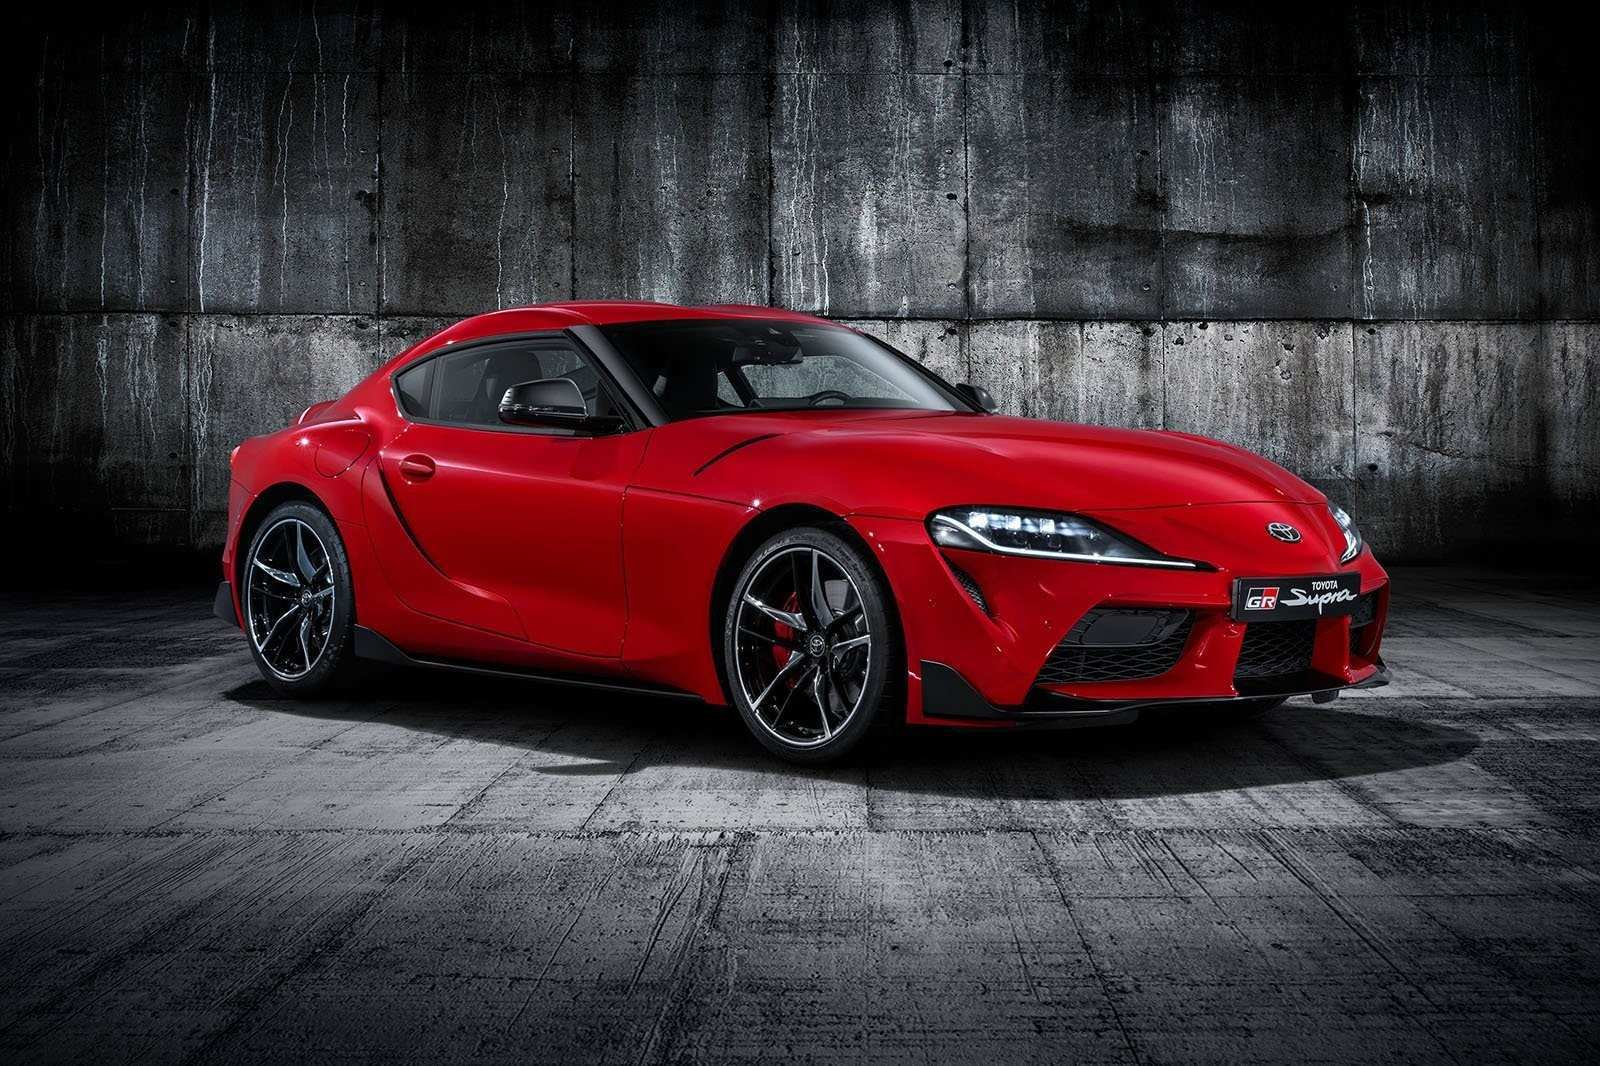 75 Great New Supra Toyota 2019 Redesign And Price History with New Supra Toyota 2019 Redesign And Price